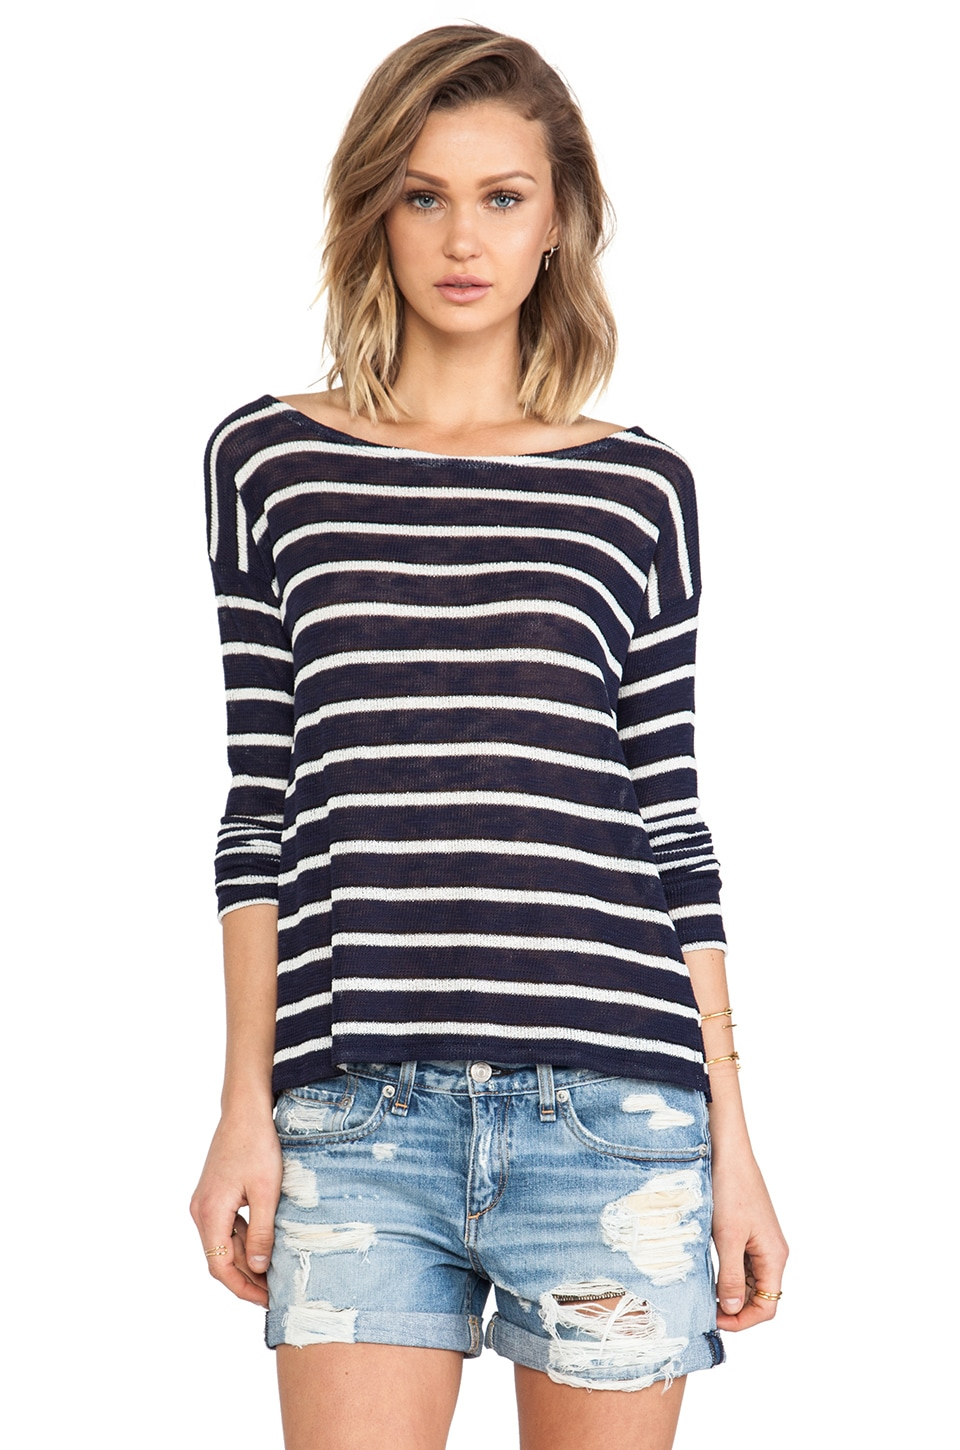 Splendid Laguna Stripe Loose Knit Top in Navy